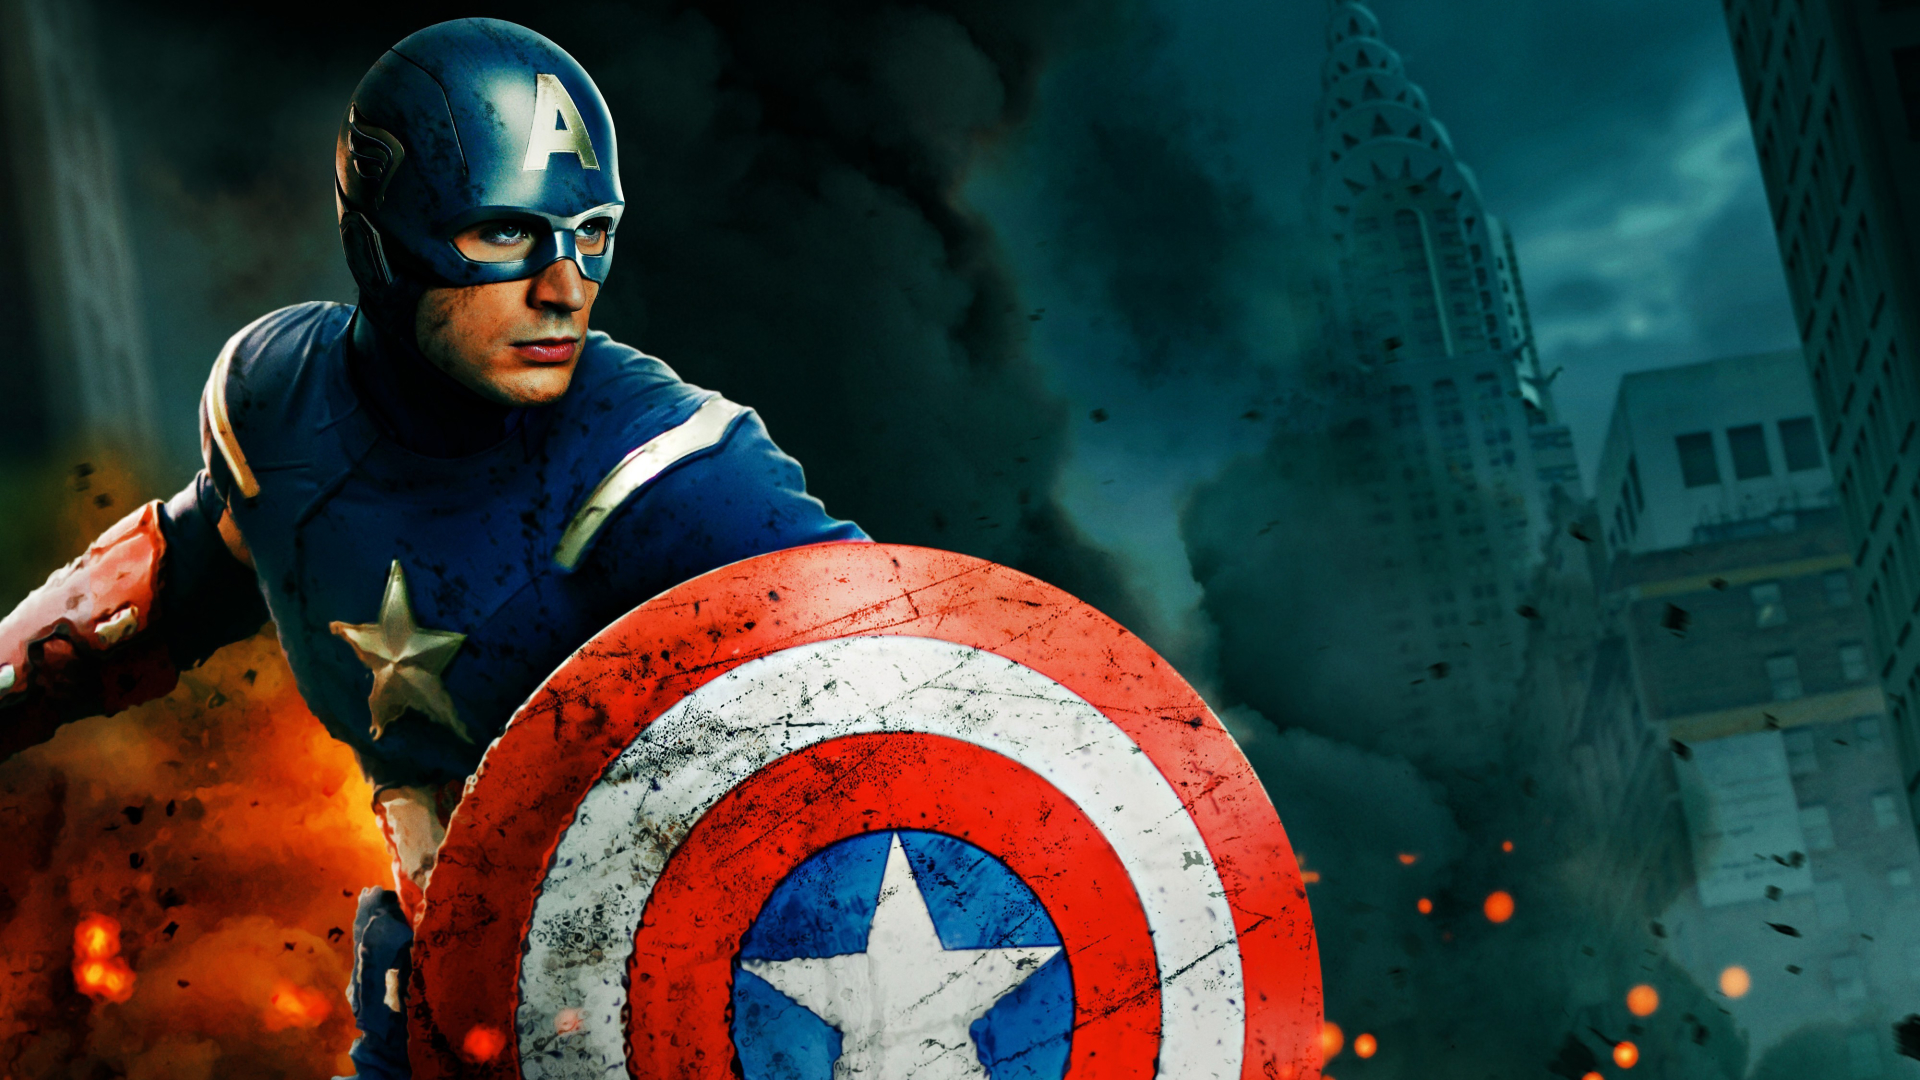 1920x1080 Captain America Hd Images 1080p Laptop Full Hd